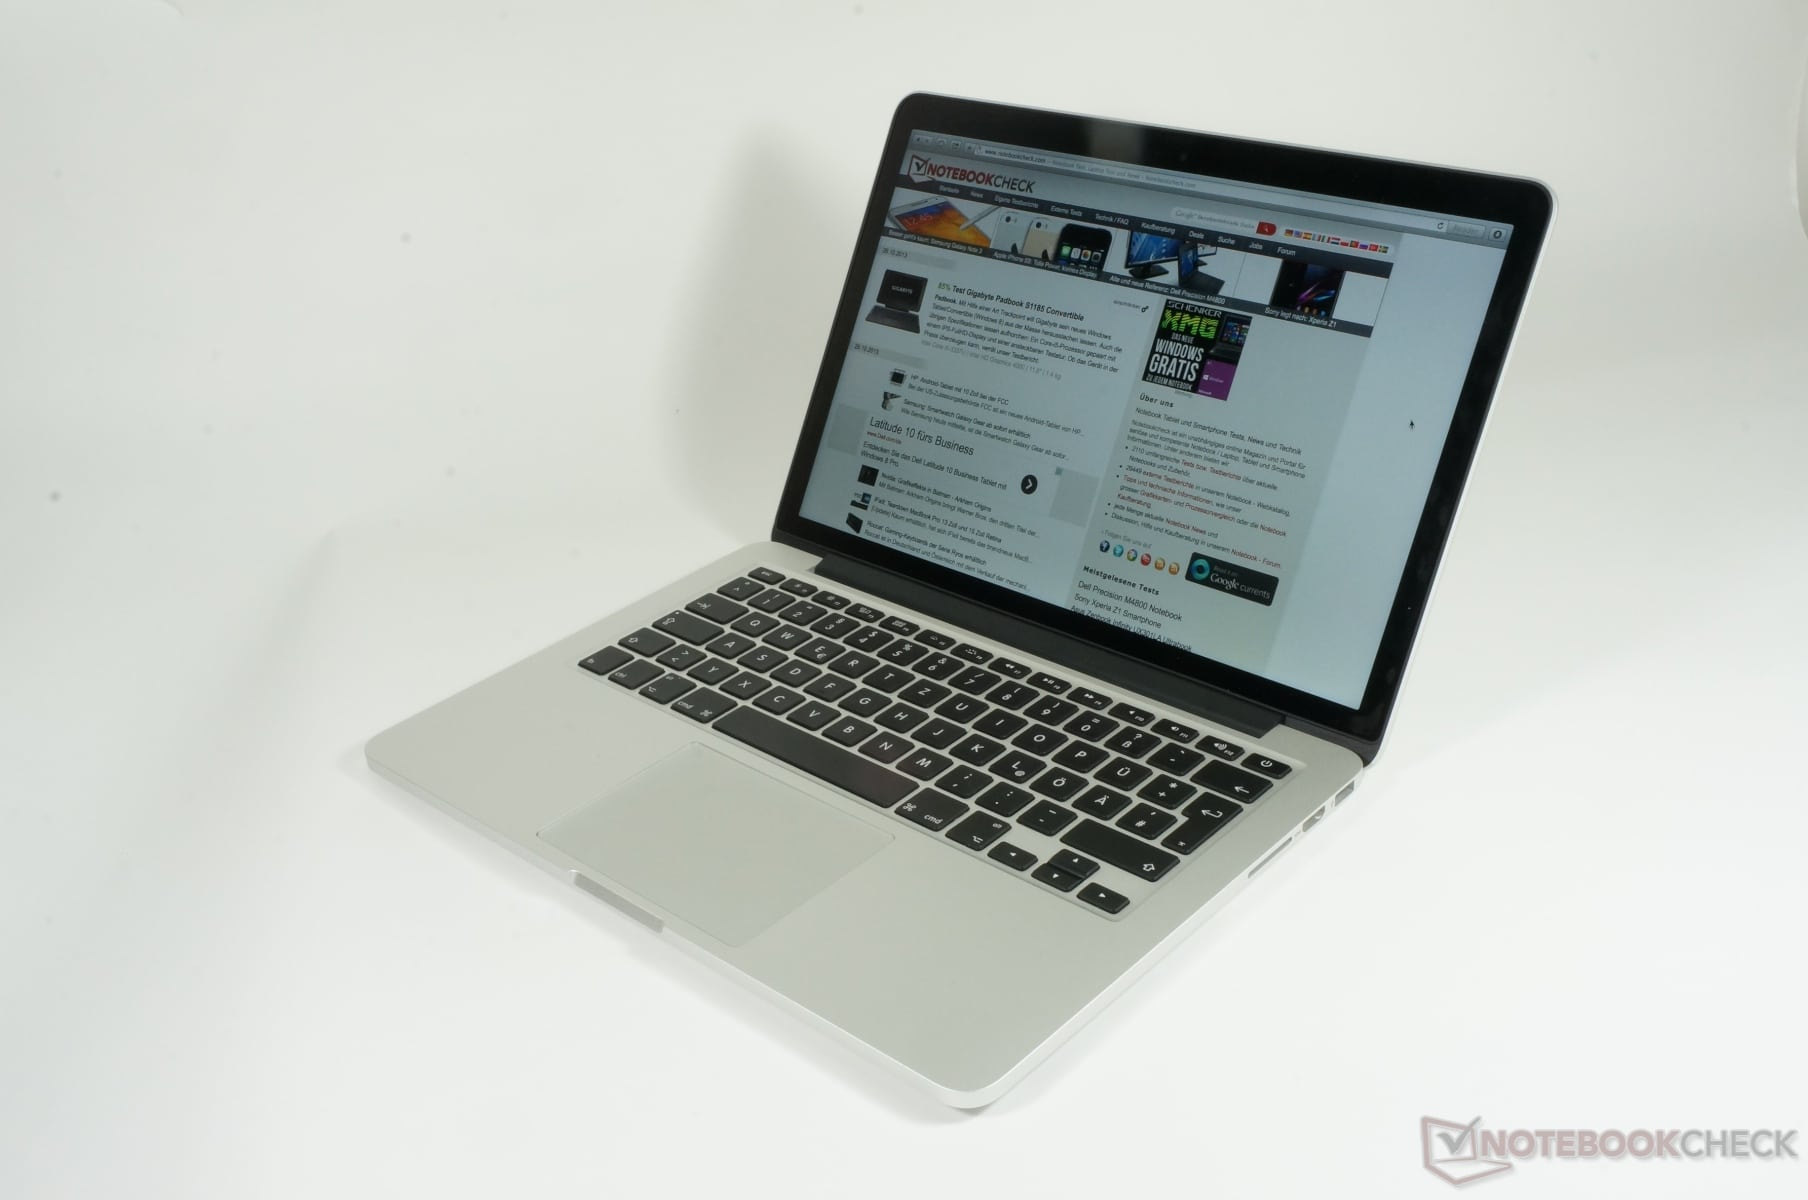 Revue de presse des tests publiés sur le Web (Apple MacBook Pro 13 Retina 2013 Haswell)